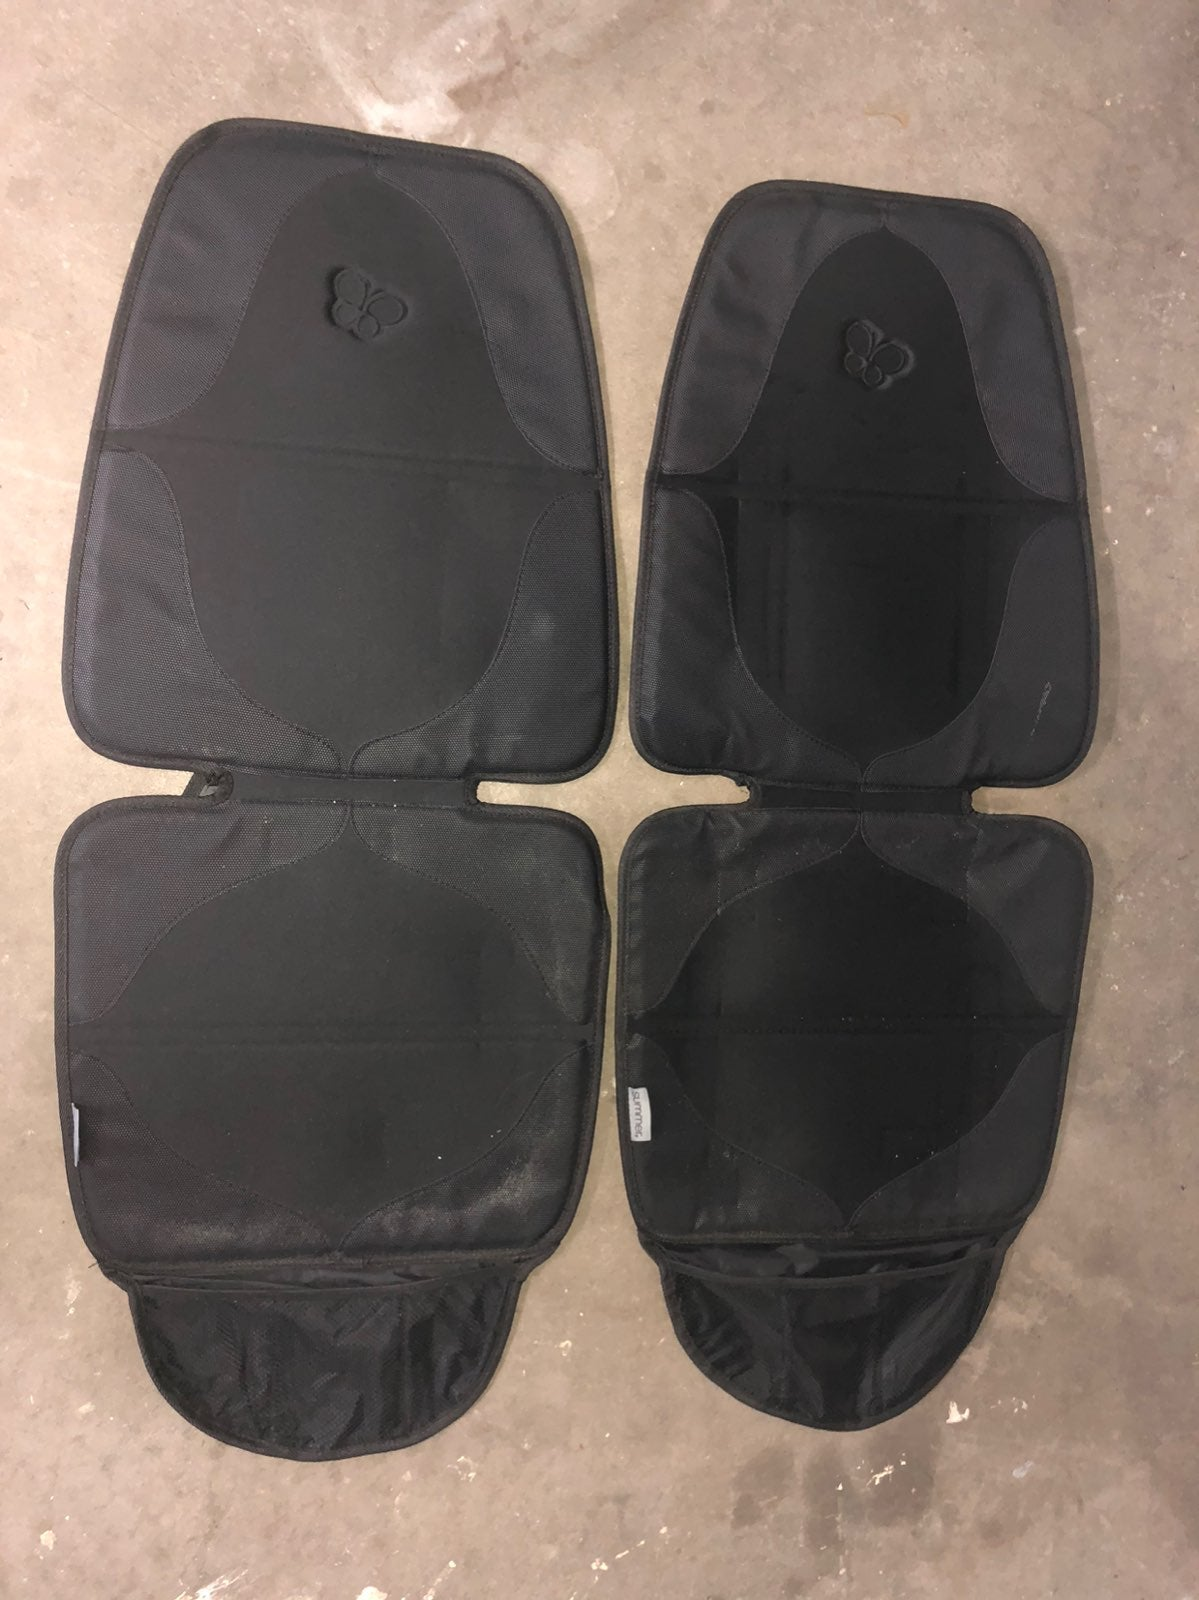 Carseat seat protector